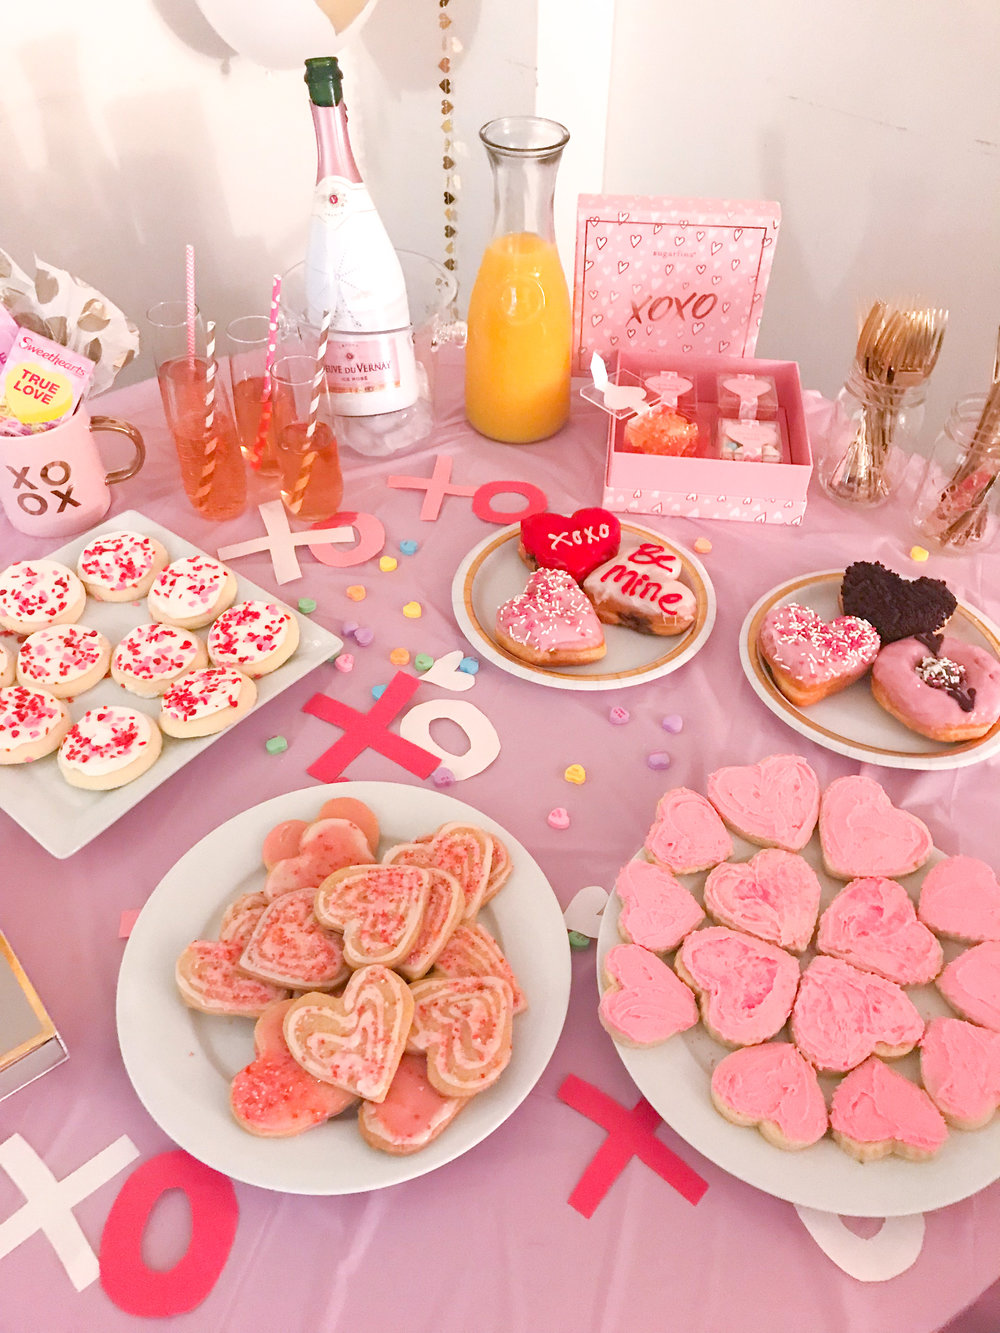 - FoodWe dined on a delish homemade egg bake, quiche, mini bagels and fresh fruit.SweetsWe have some great bakers in our group of friends so many of the cookies were homemade! But we also had some super cute doughnuts from Dunkin and adorable candies from Sugarfina! DrinksTo keep with the pink theme, we drank Veuve du Vernay Icy Rose champagne and had a mimosa bar with classic orange juice and also strawberry, orange and banana (it was the perfect pink color!)GamesWhile sipping and snacking, we spent the day laughing and playing